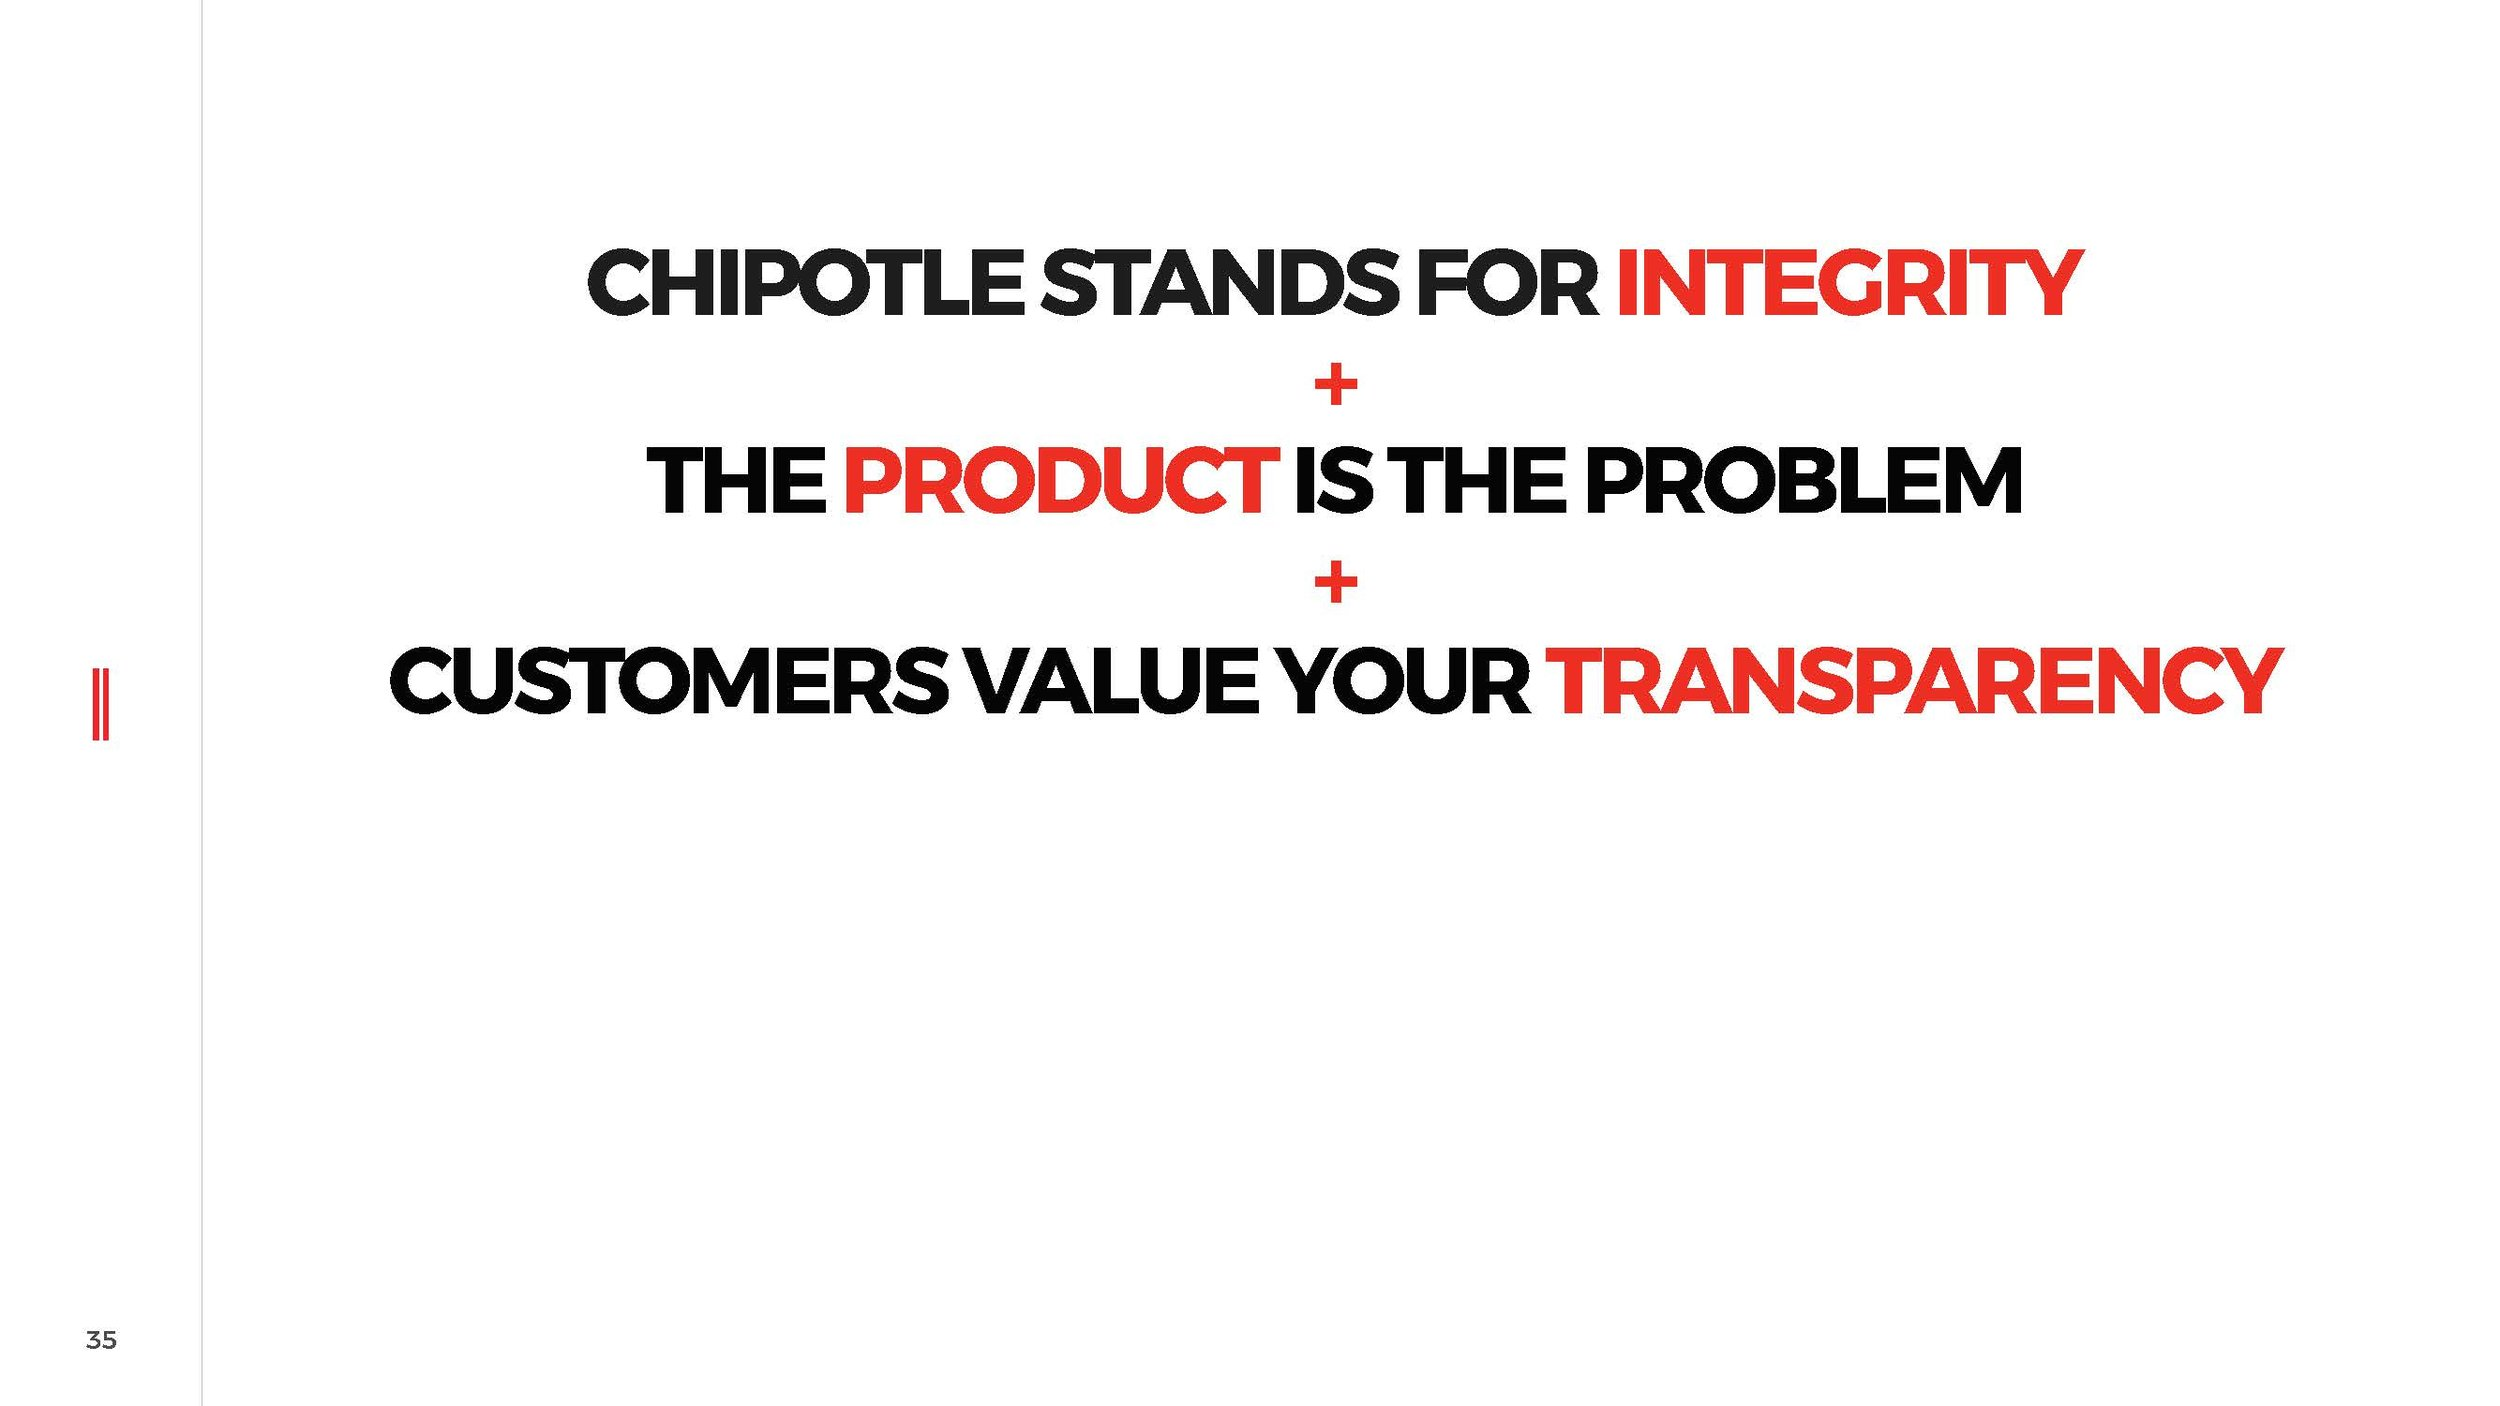 Chipotle Deck 1 Images_Page_35.jpg